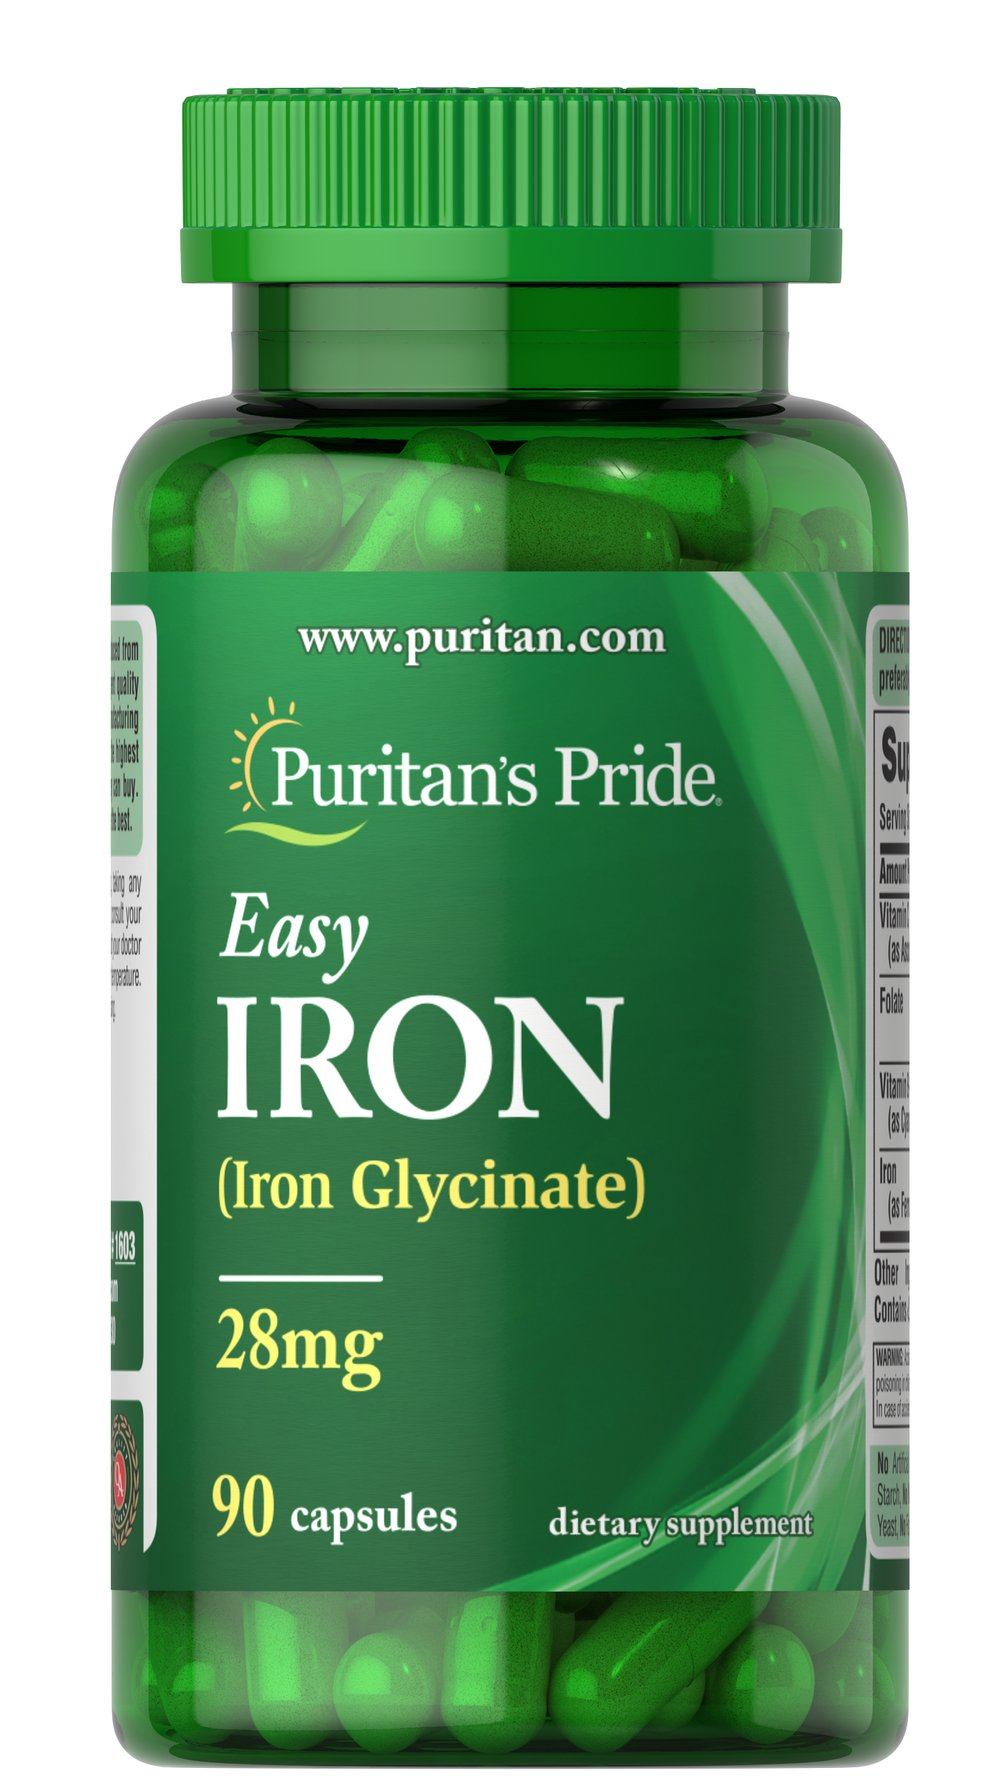 Easy Iron 28 mg (Iron Glycinate) Thumbnail Alternate Bottle View